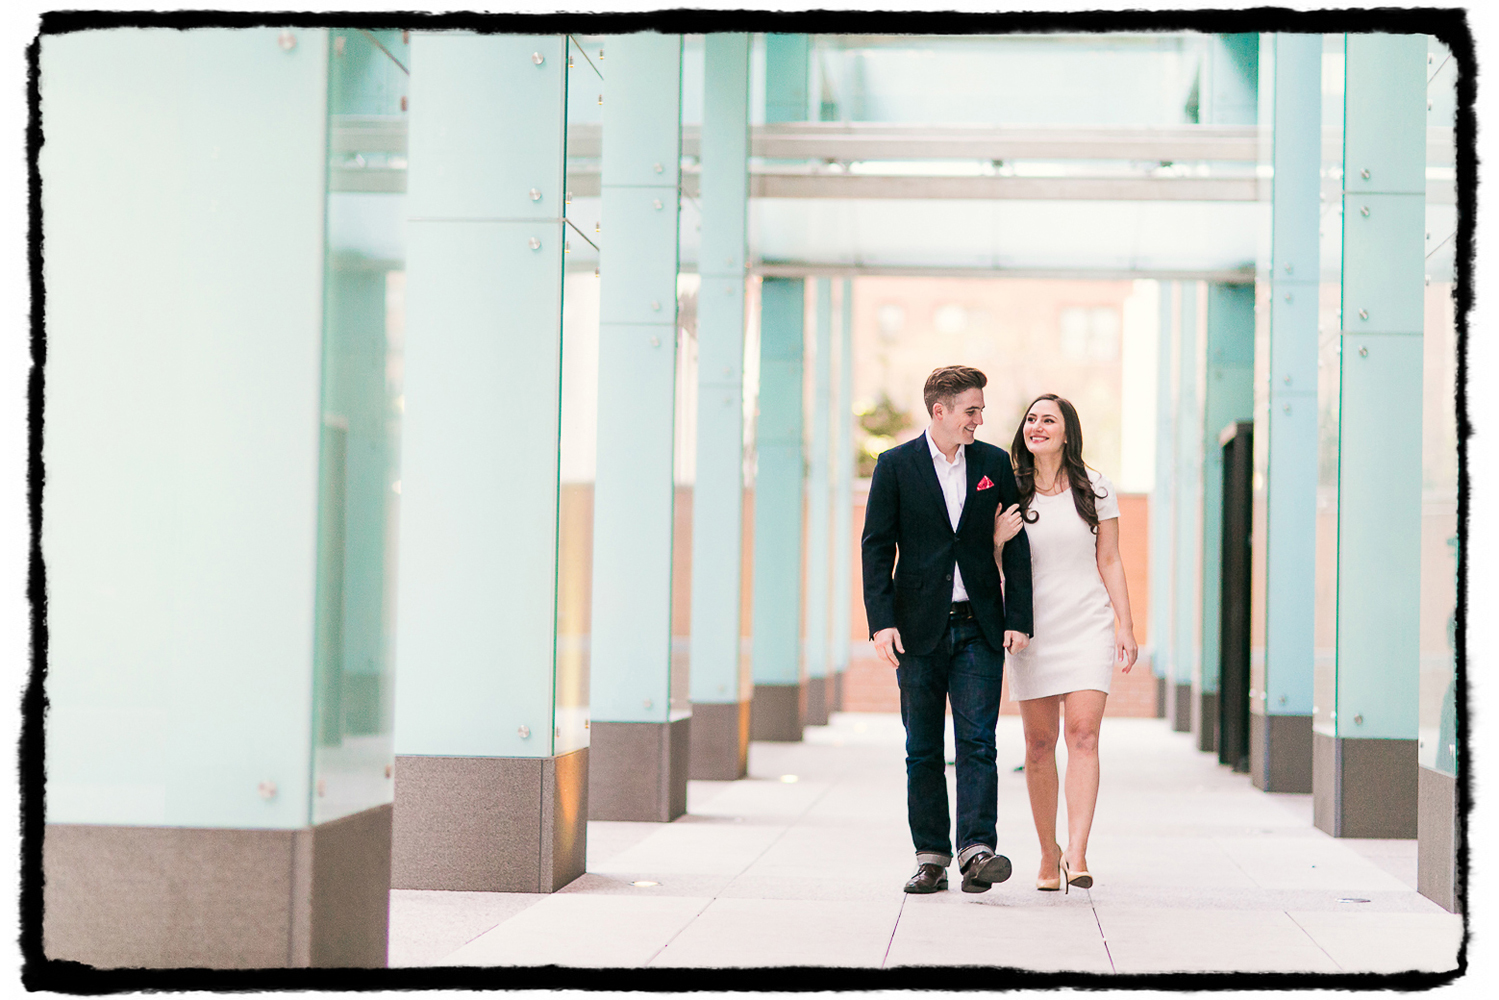 Engagement Portraits: Michelle & Dan take a walk near Washington Square Park.